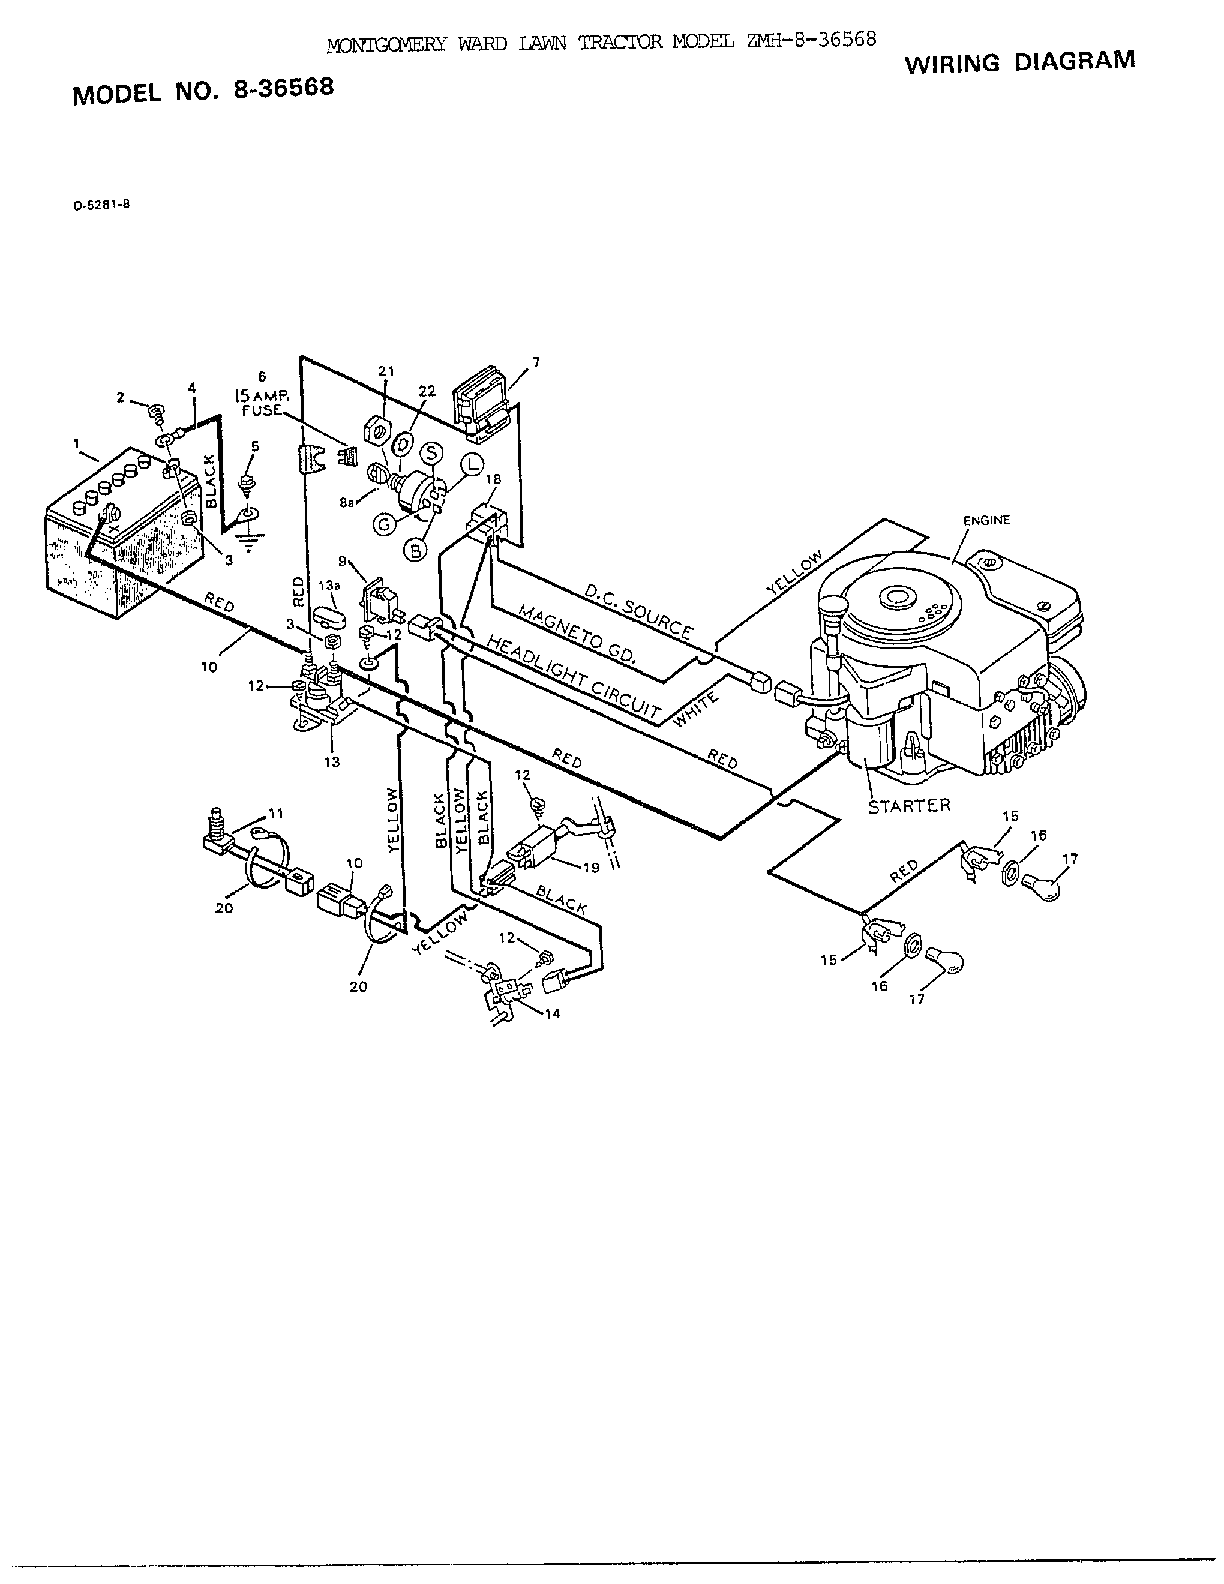 WIRING DIAGRAM Diagram & Parts List for Model 836568